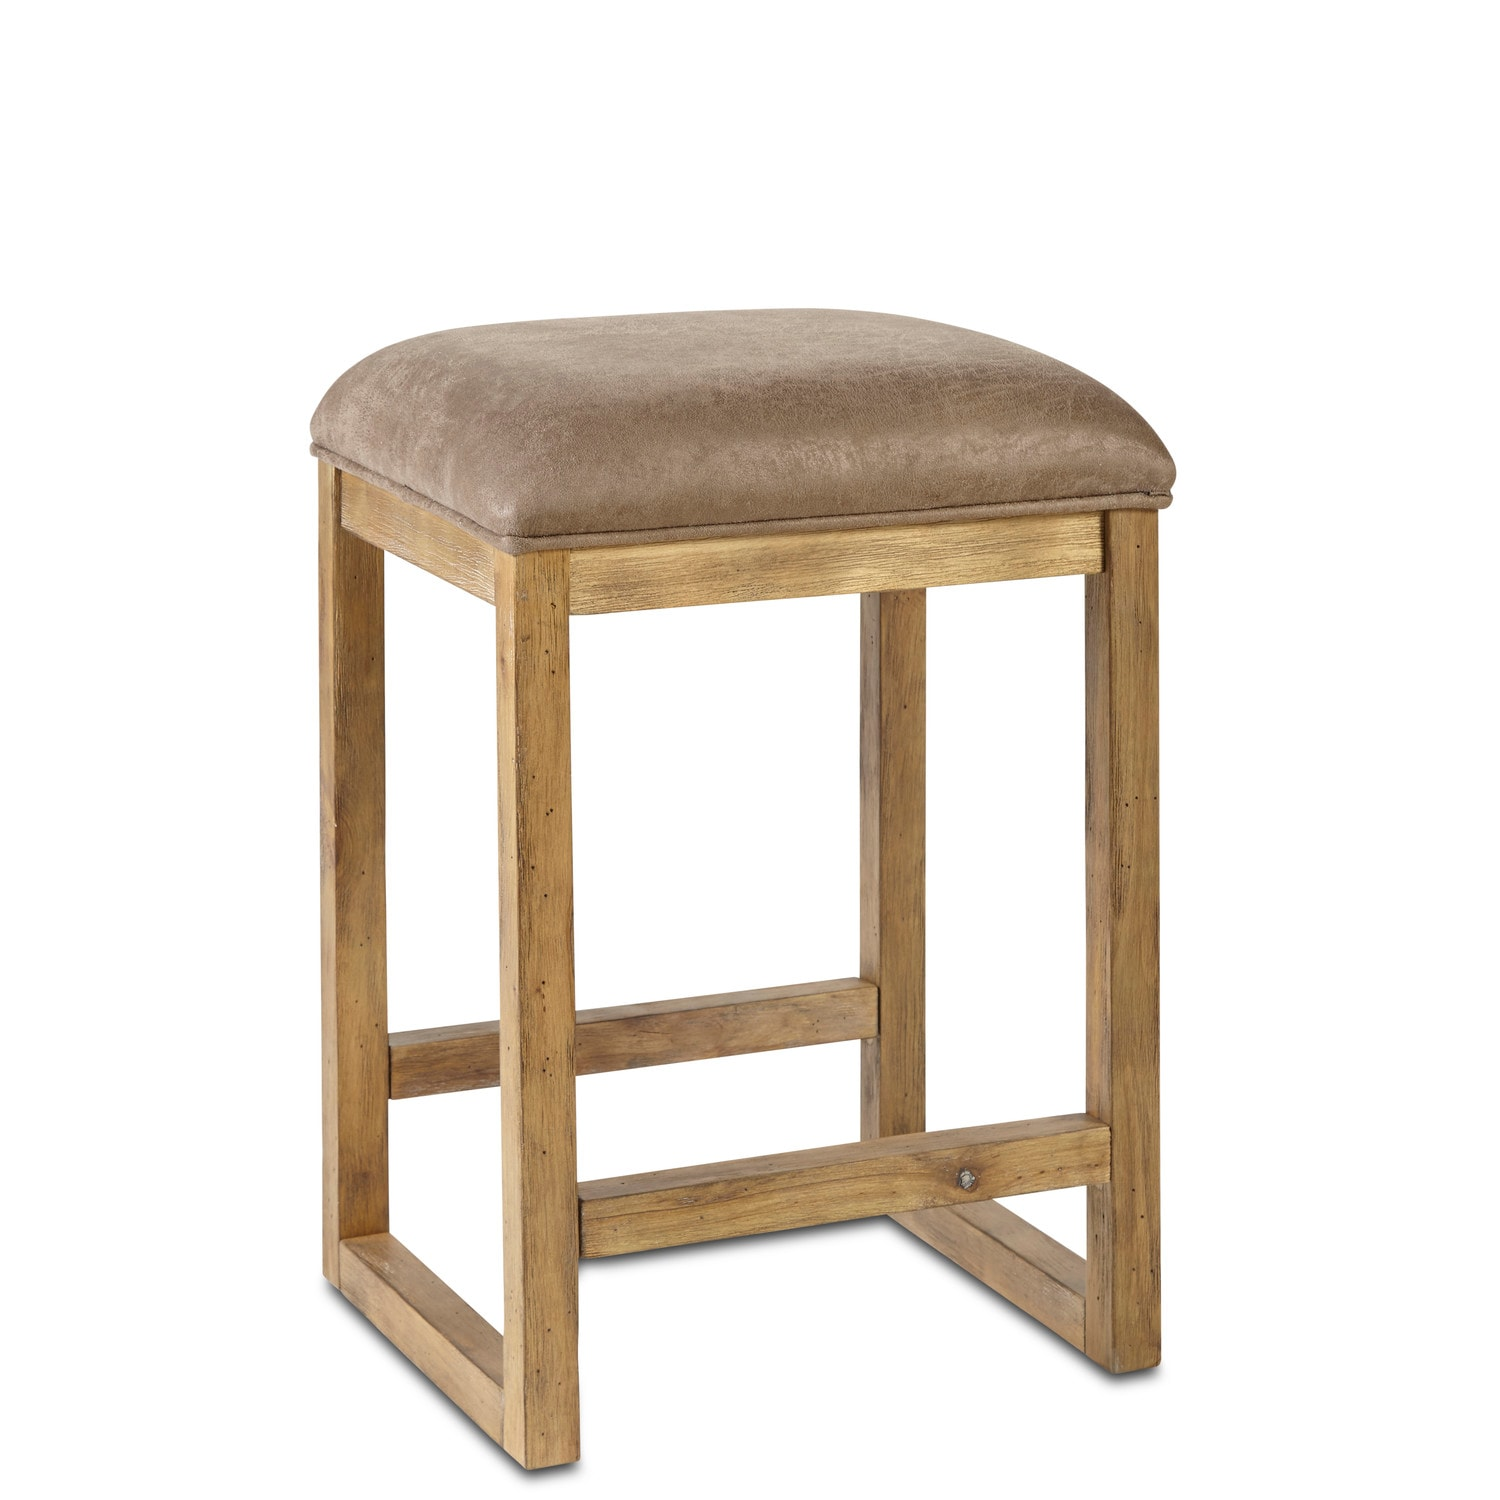 Accent and Occasional Furniture - Cameron Counter-Height Stool - Taupe